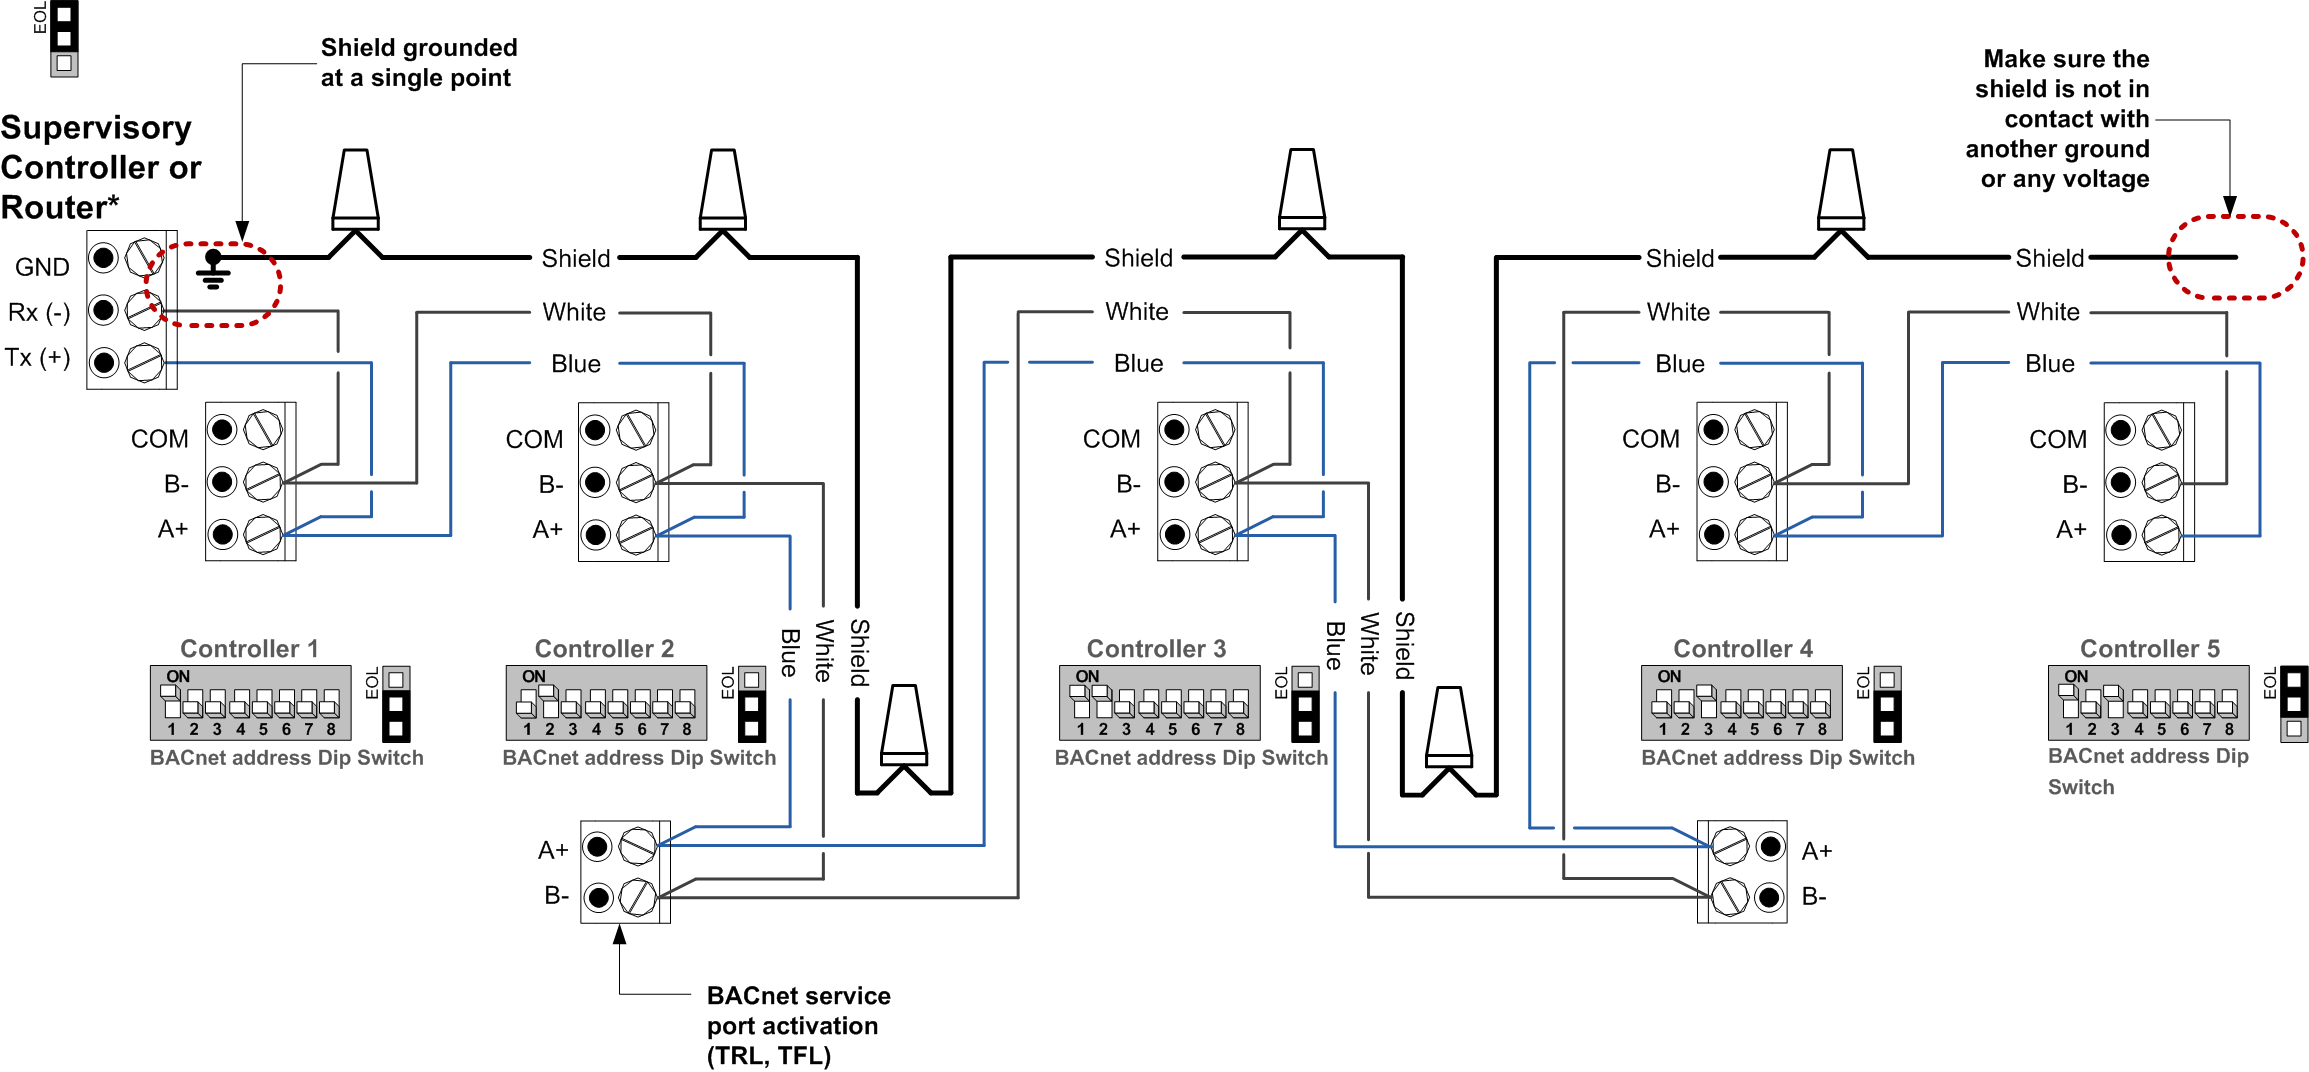 bacnet wiring diagram methods bacnet wiring guide